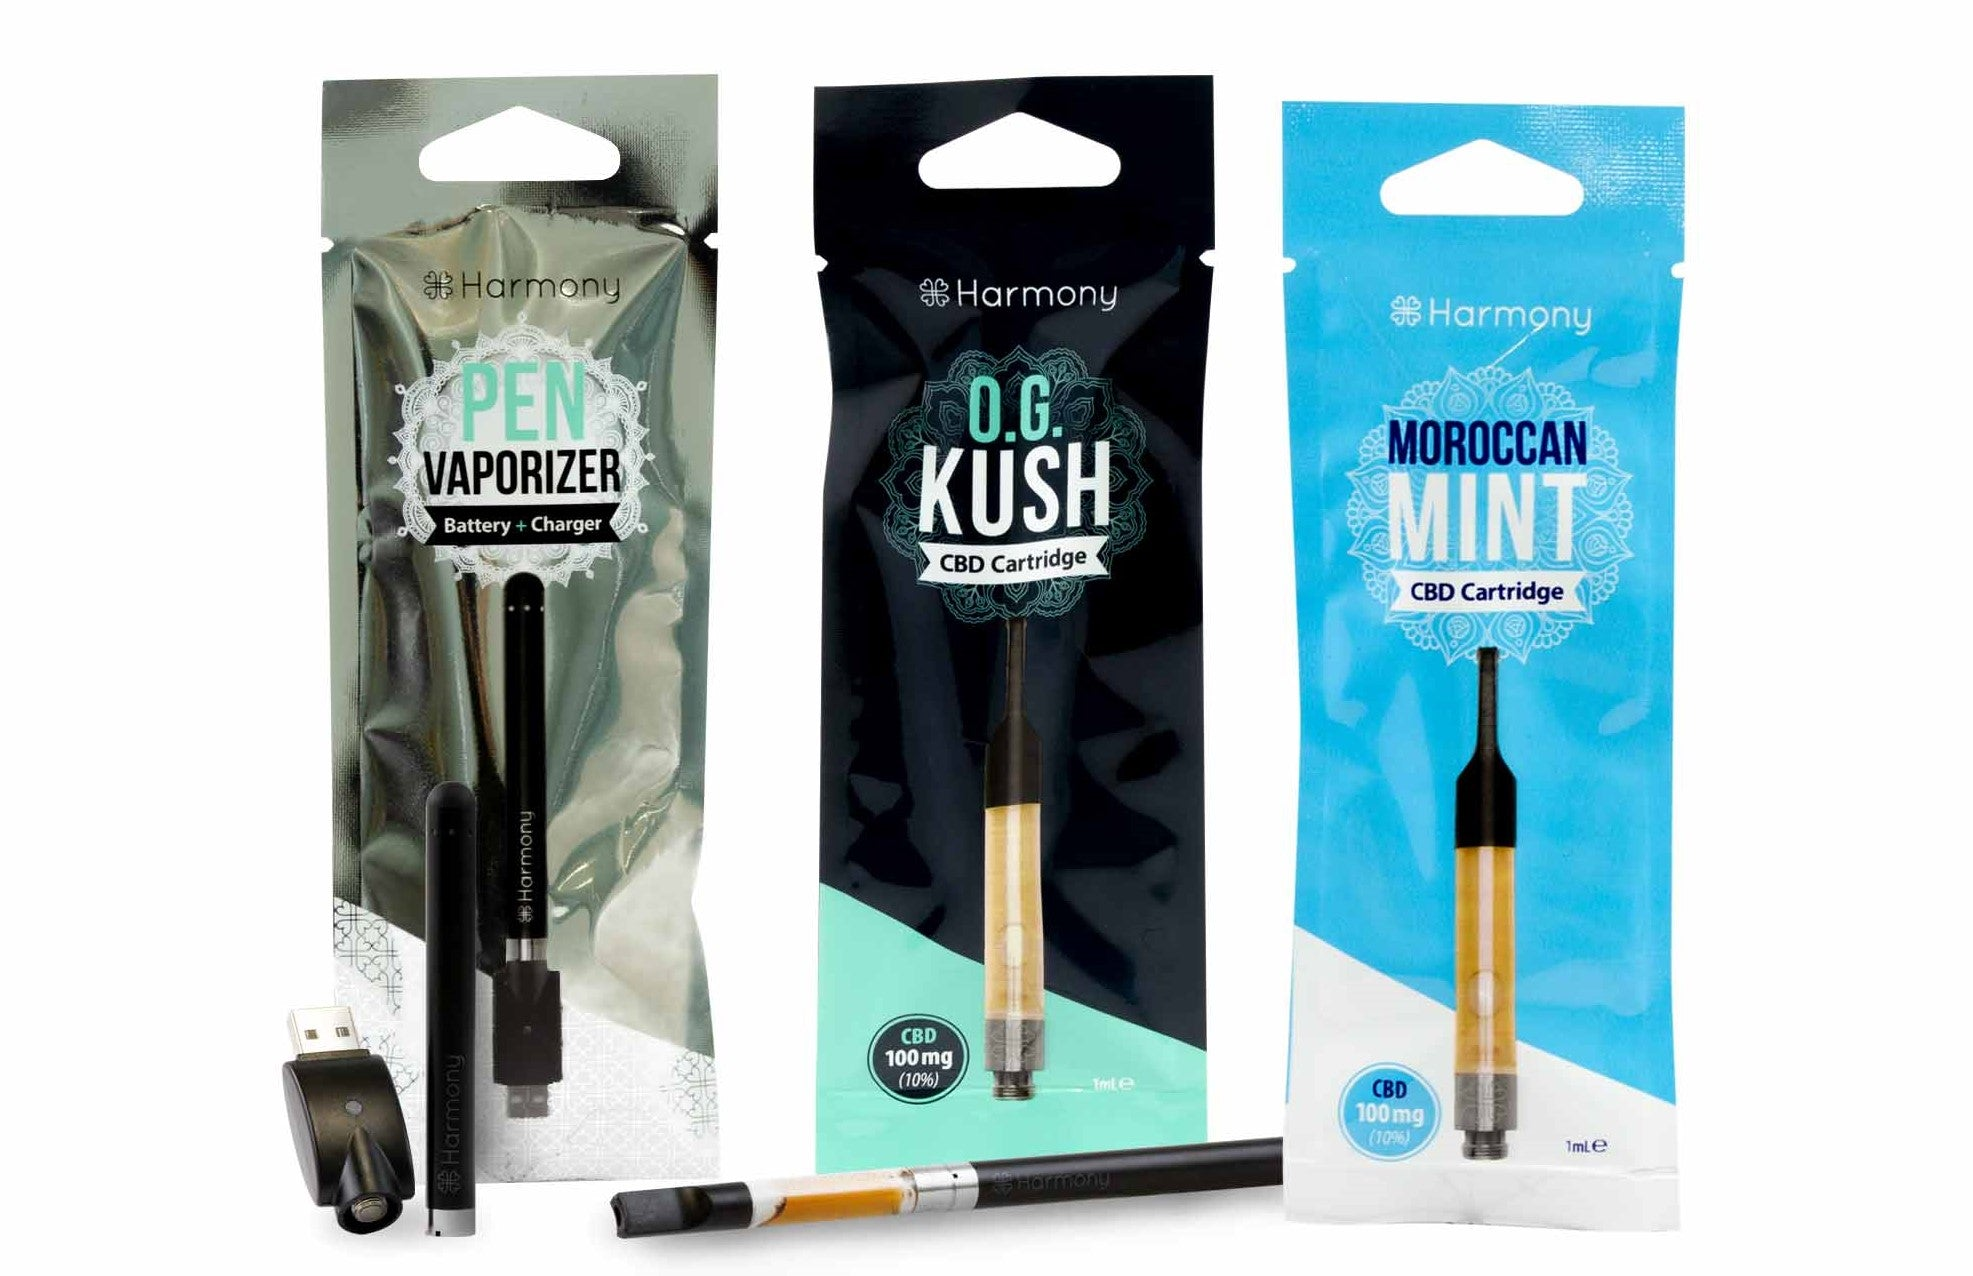 Harmony cbd pen all accessories